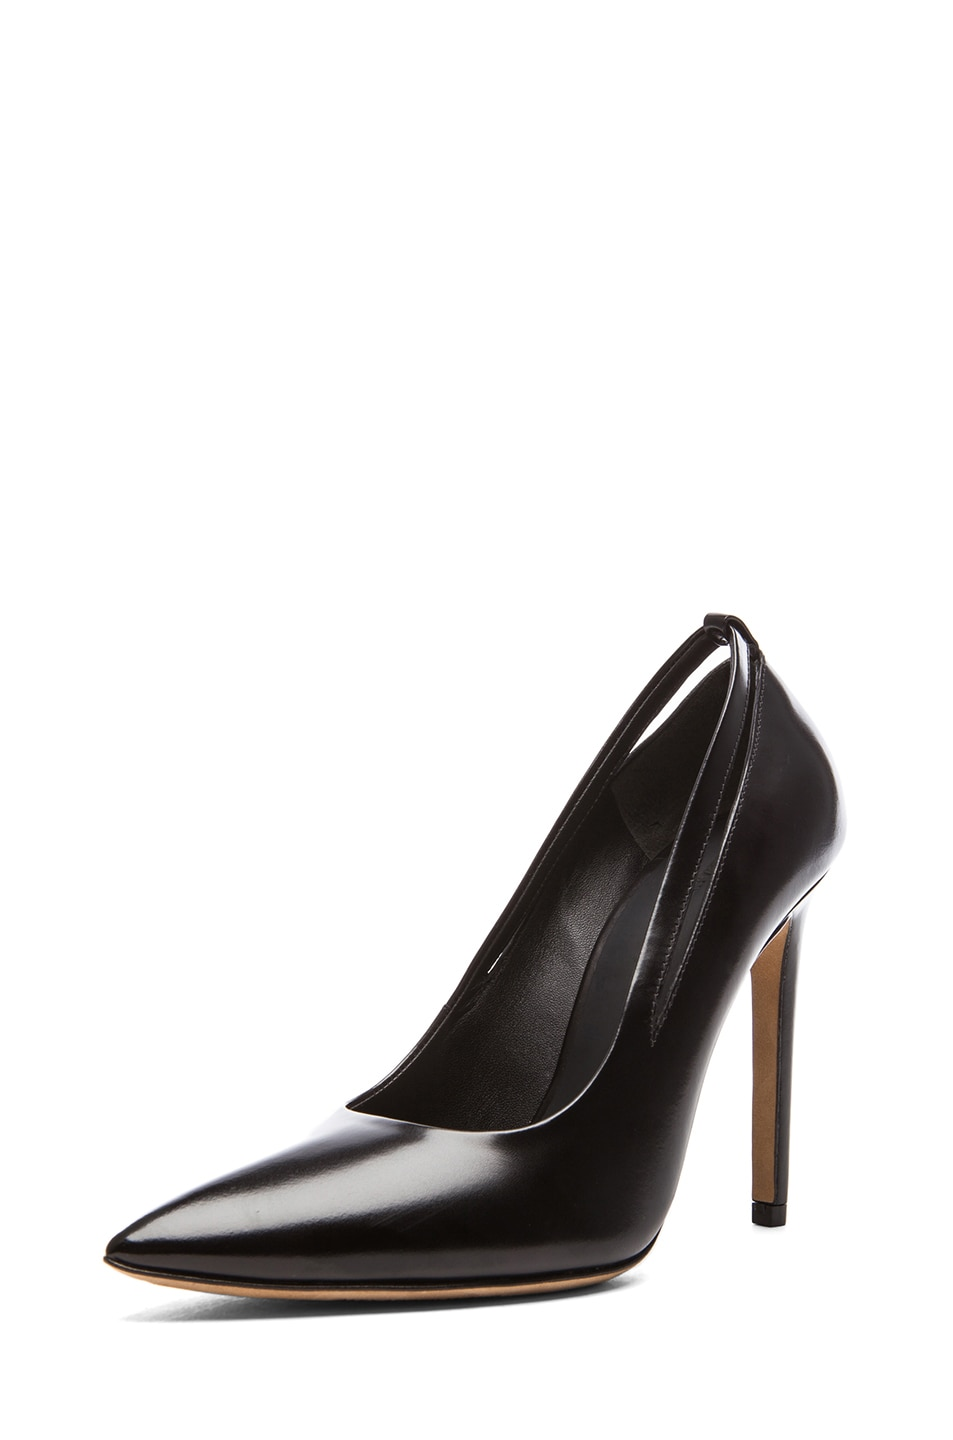 Image 2 of Alexander Wang Kiko Shiny Leather Pumps in Black